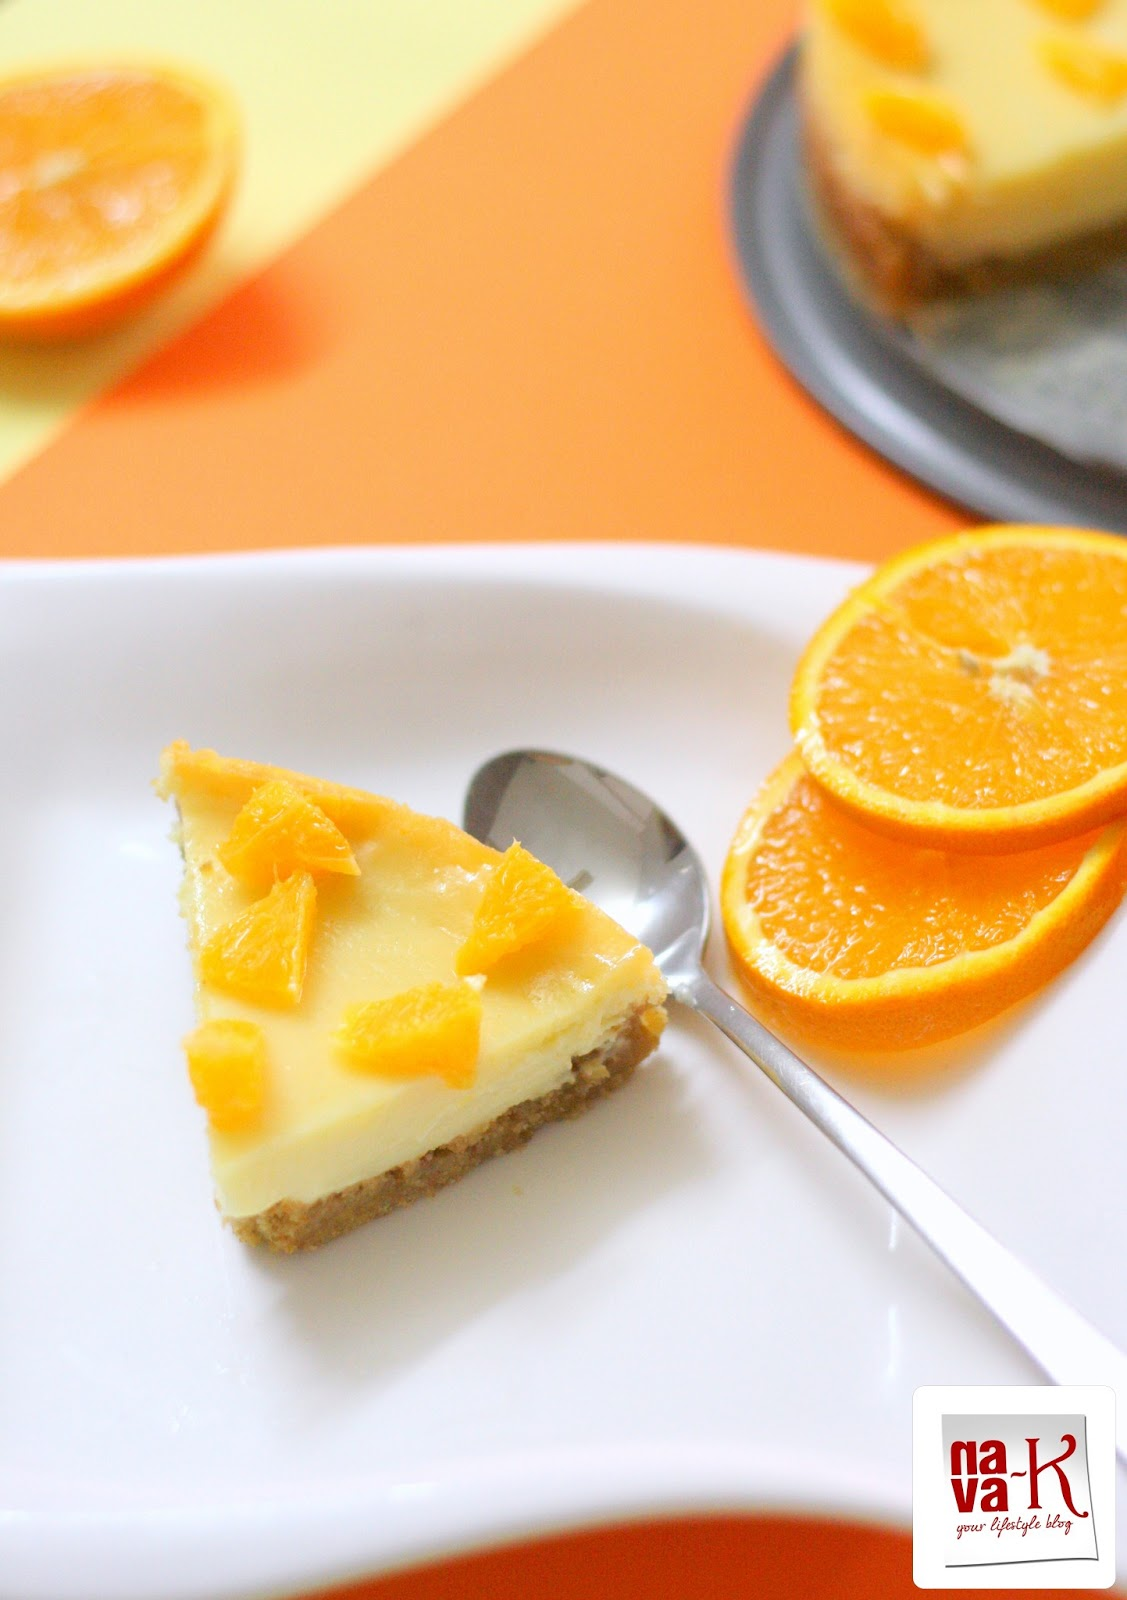 nava-k: Orange Cheesecake